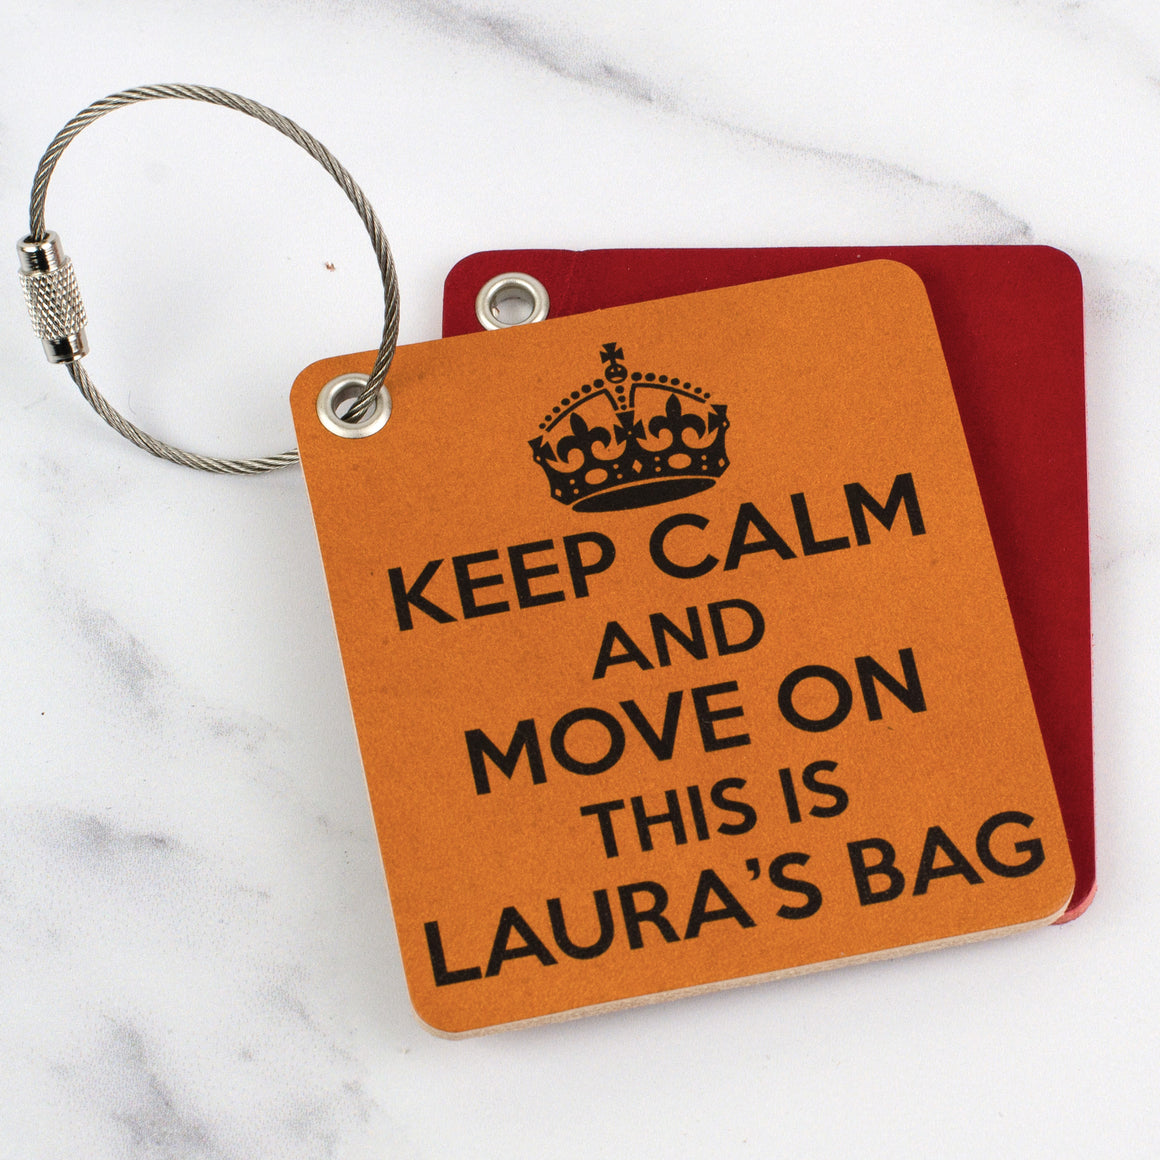 Keep calm and move on luggage tag